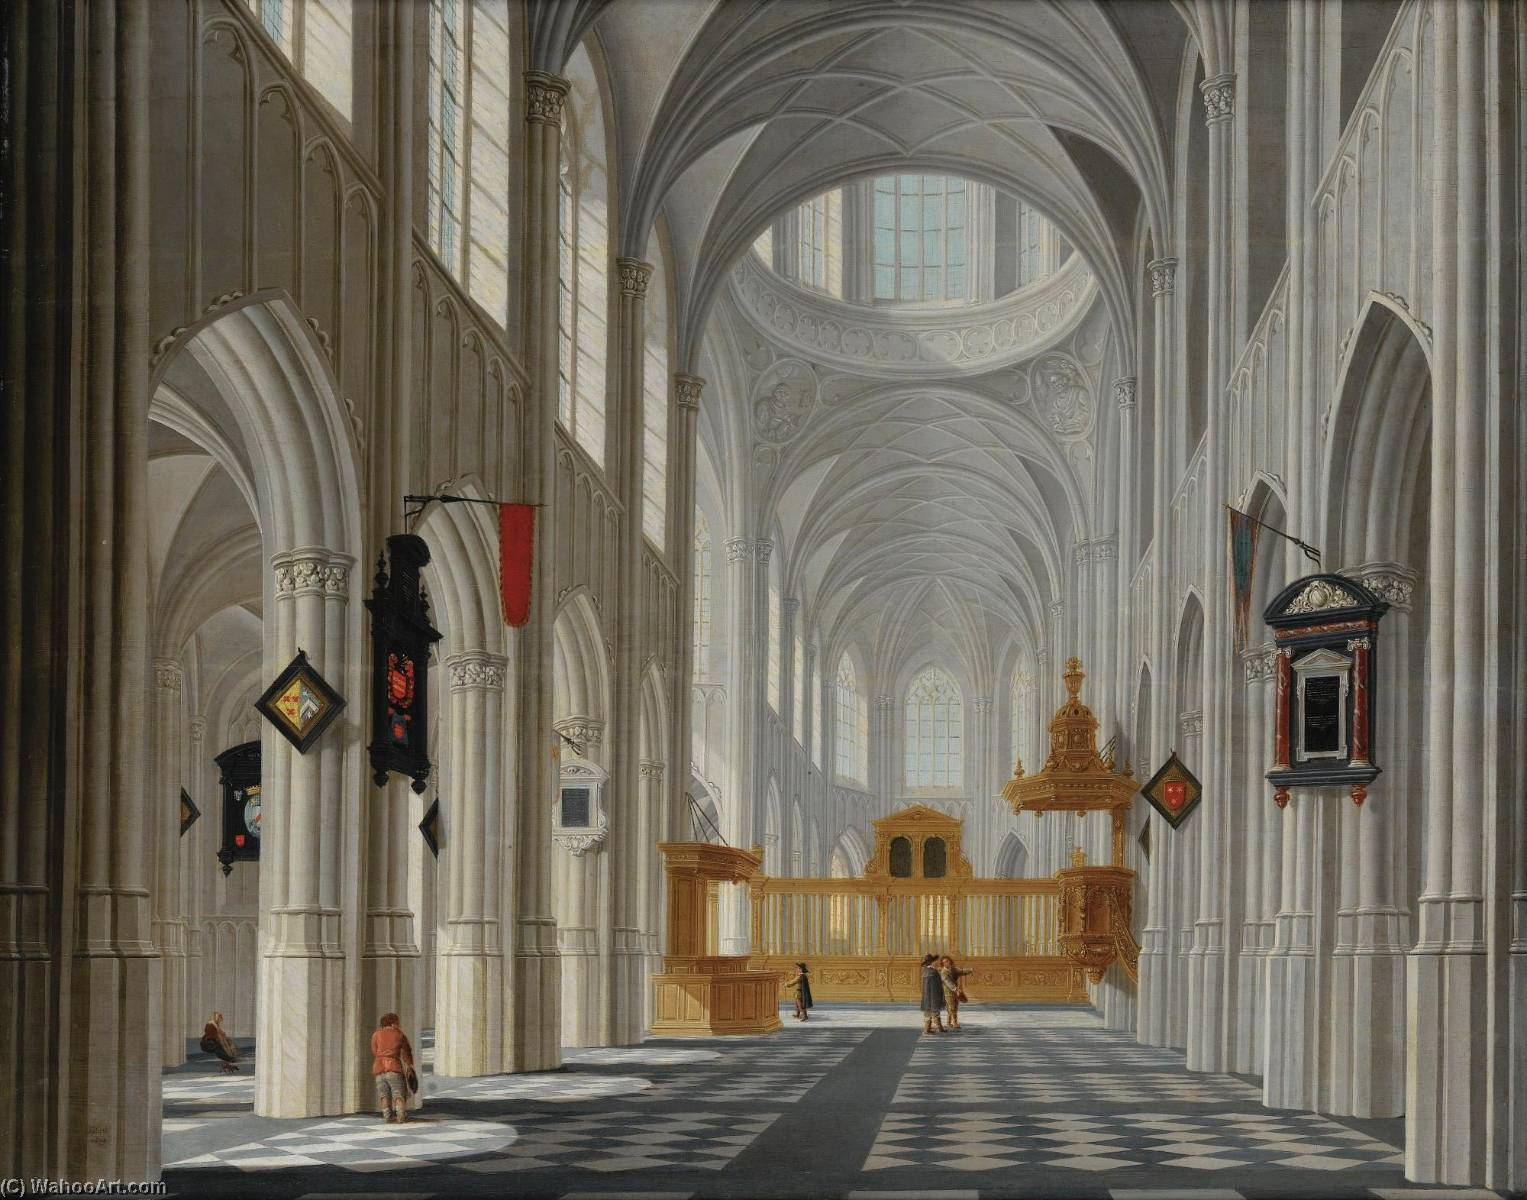 The interior of a gothic church, Oil On Panel by Daniel De Blieck